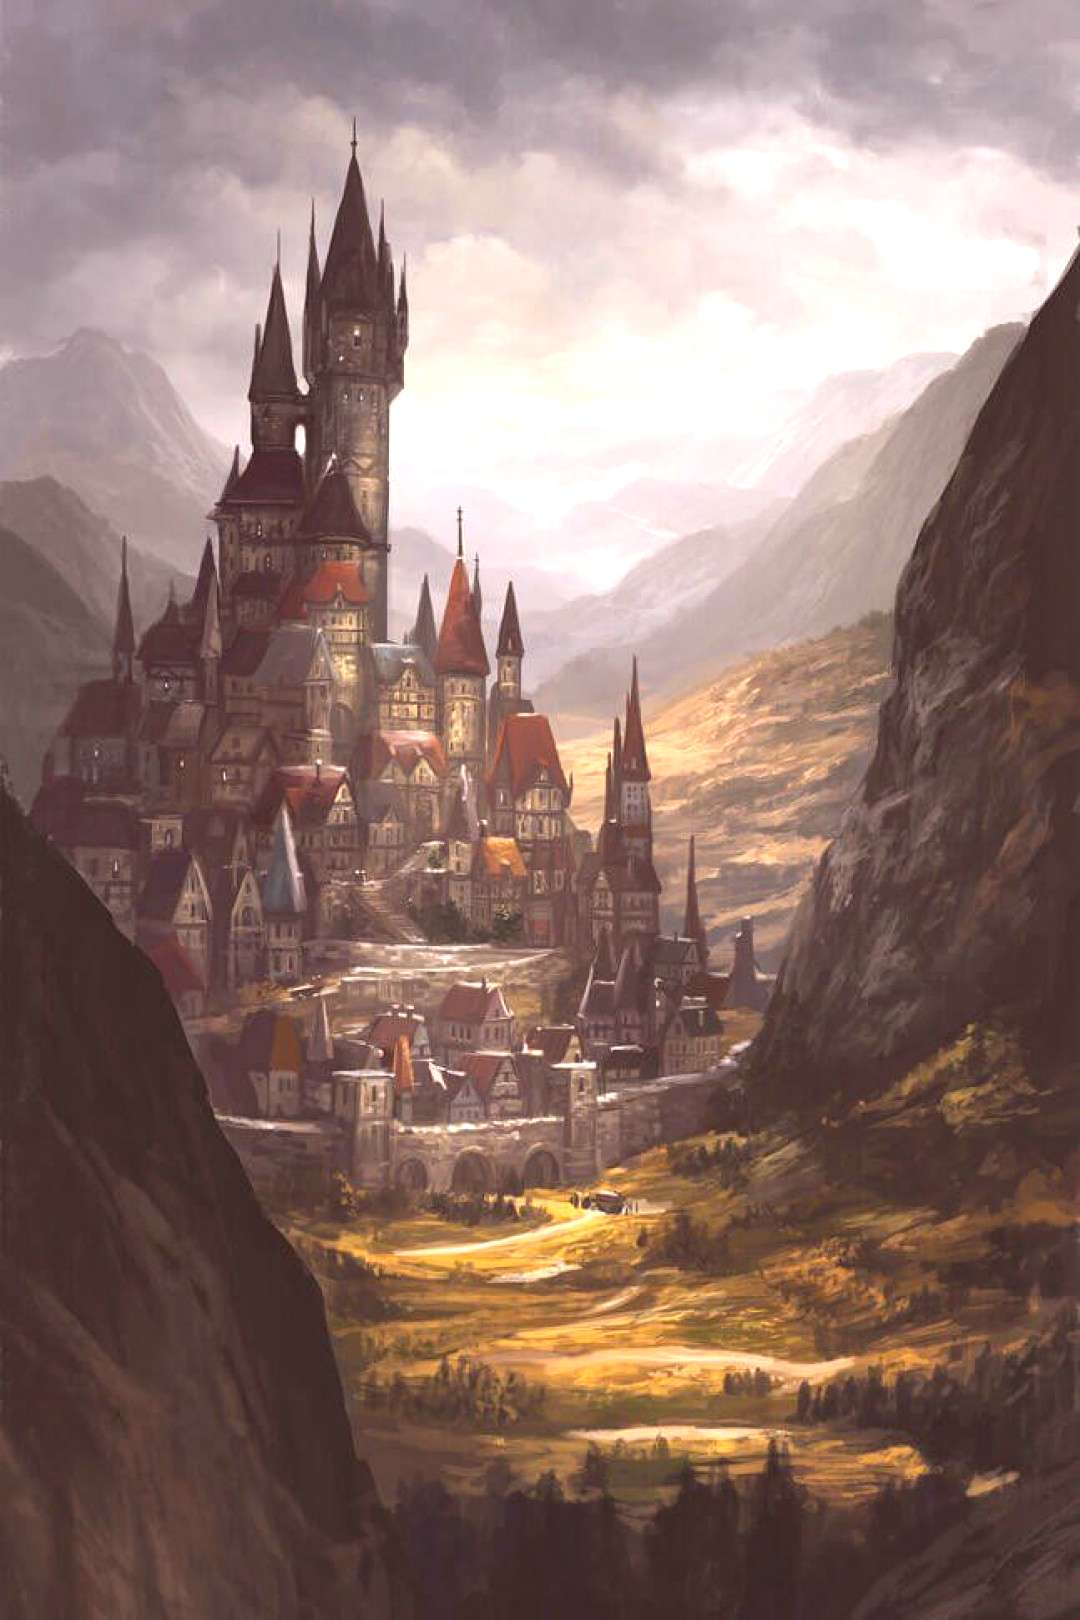 Medieval Fantasy Cities : medieval, fantasy, cities, Fantasy, Medieval, Buildings,, Cities, Castles, Concept, Inspire